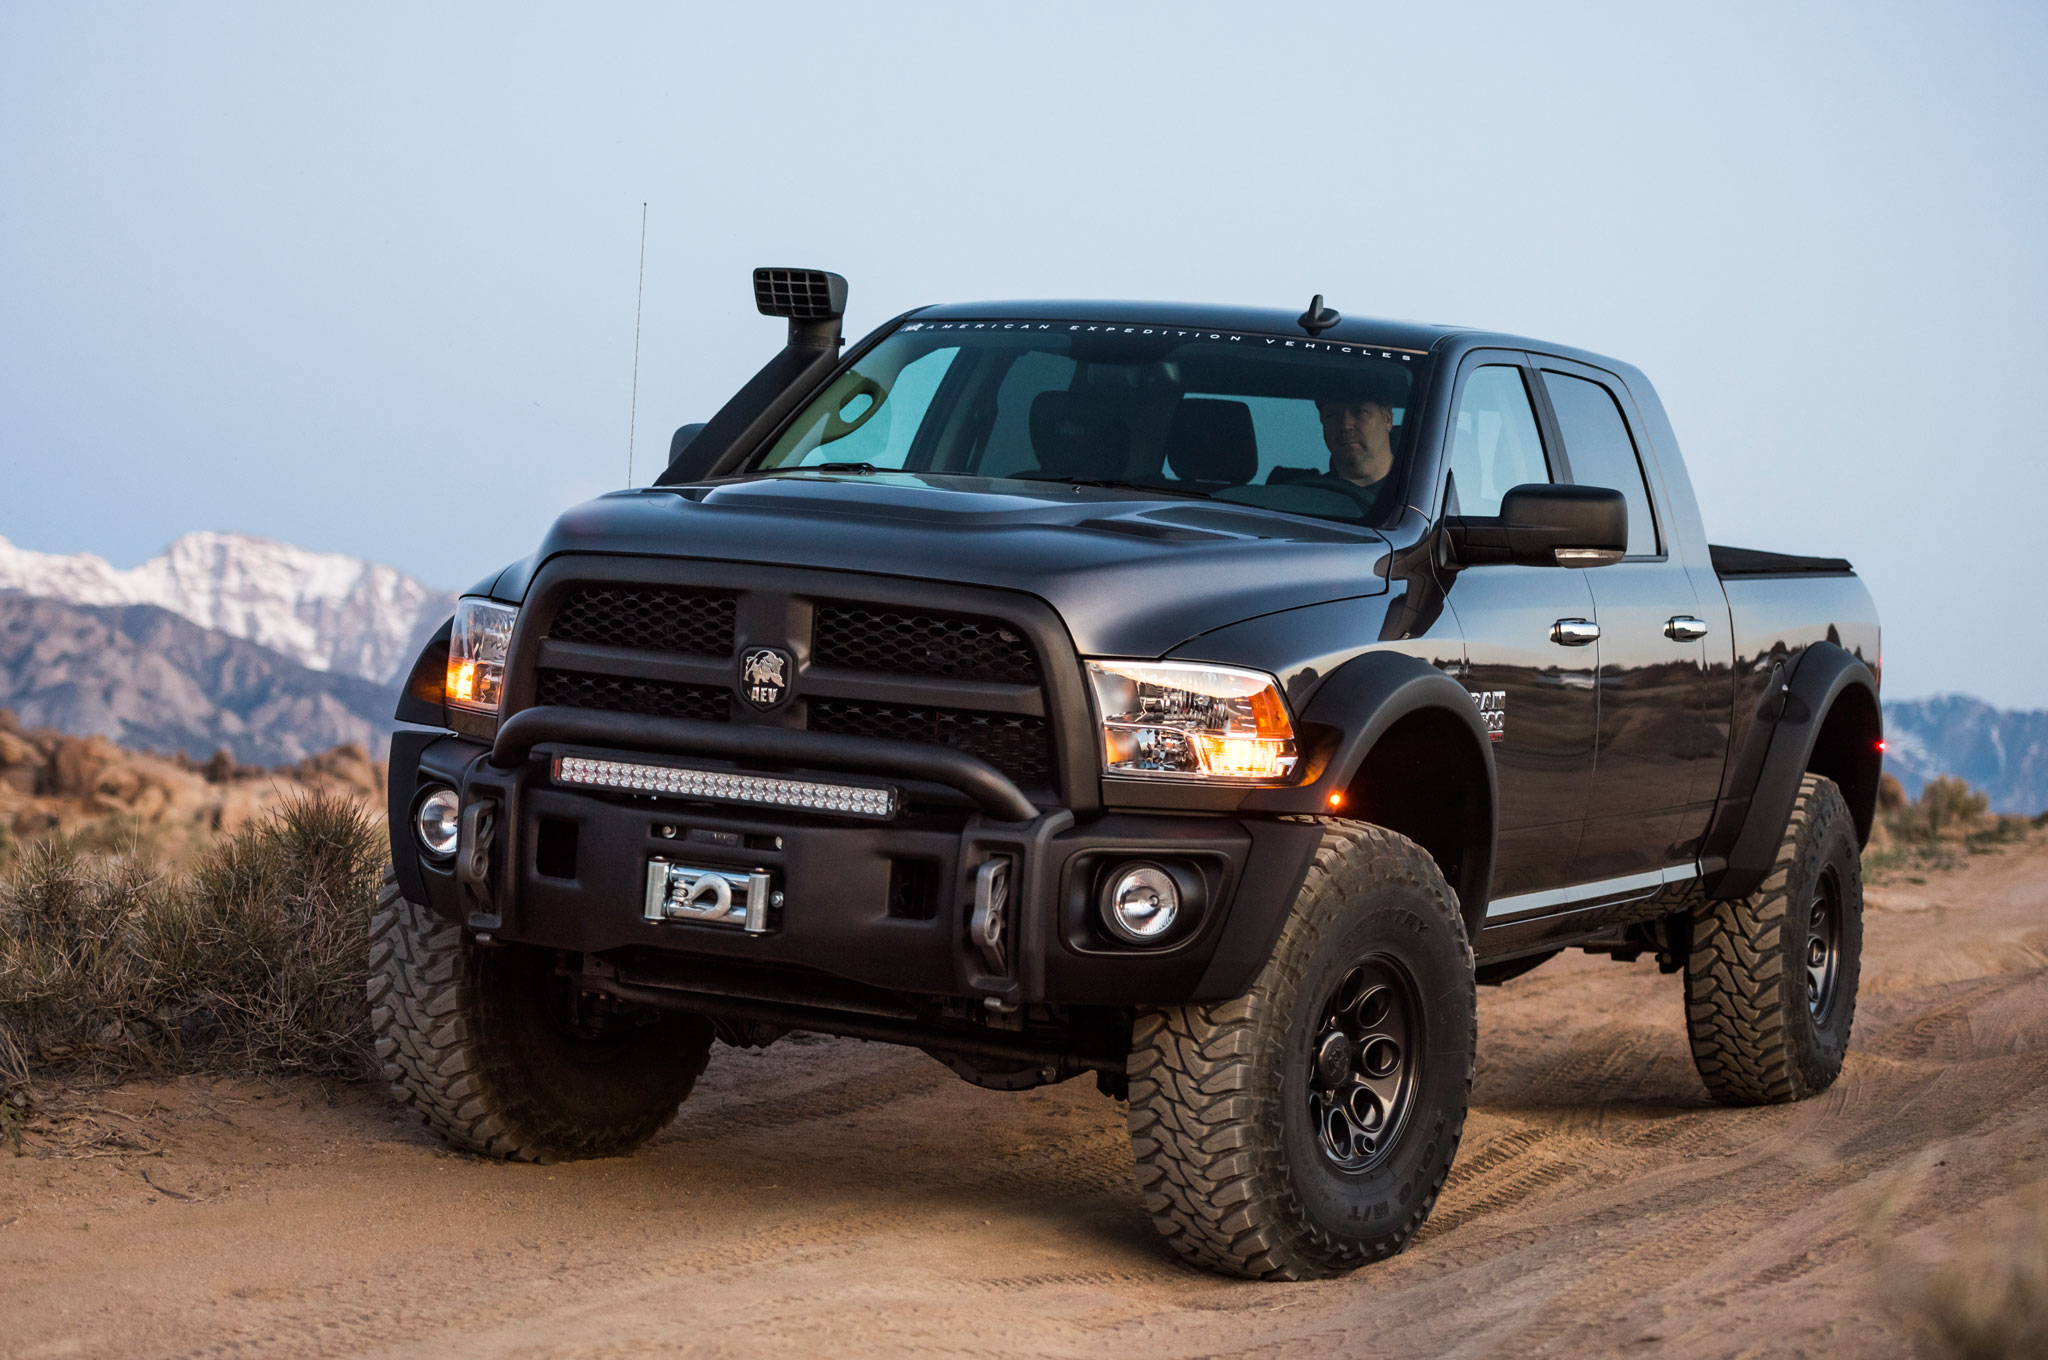 Aev Prospector Xl A Cummins Ram Power Wagon By Another Name